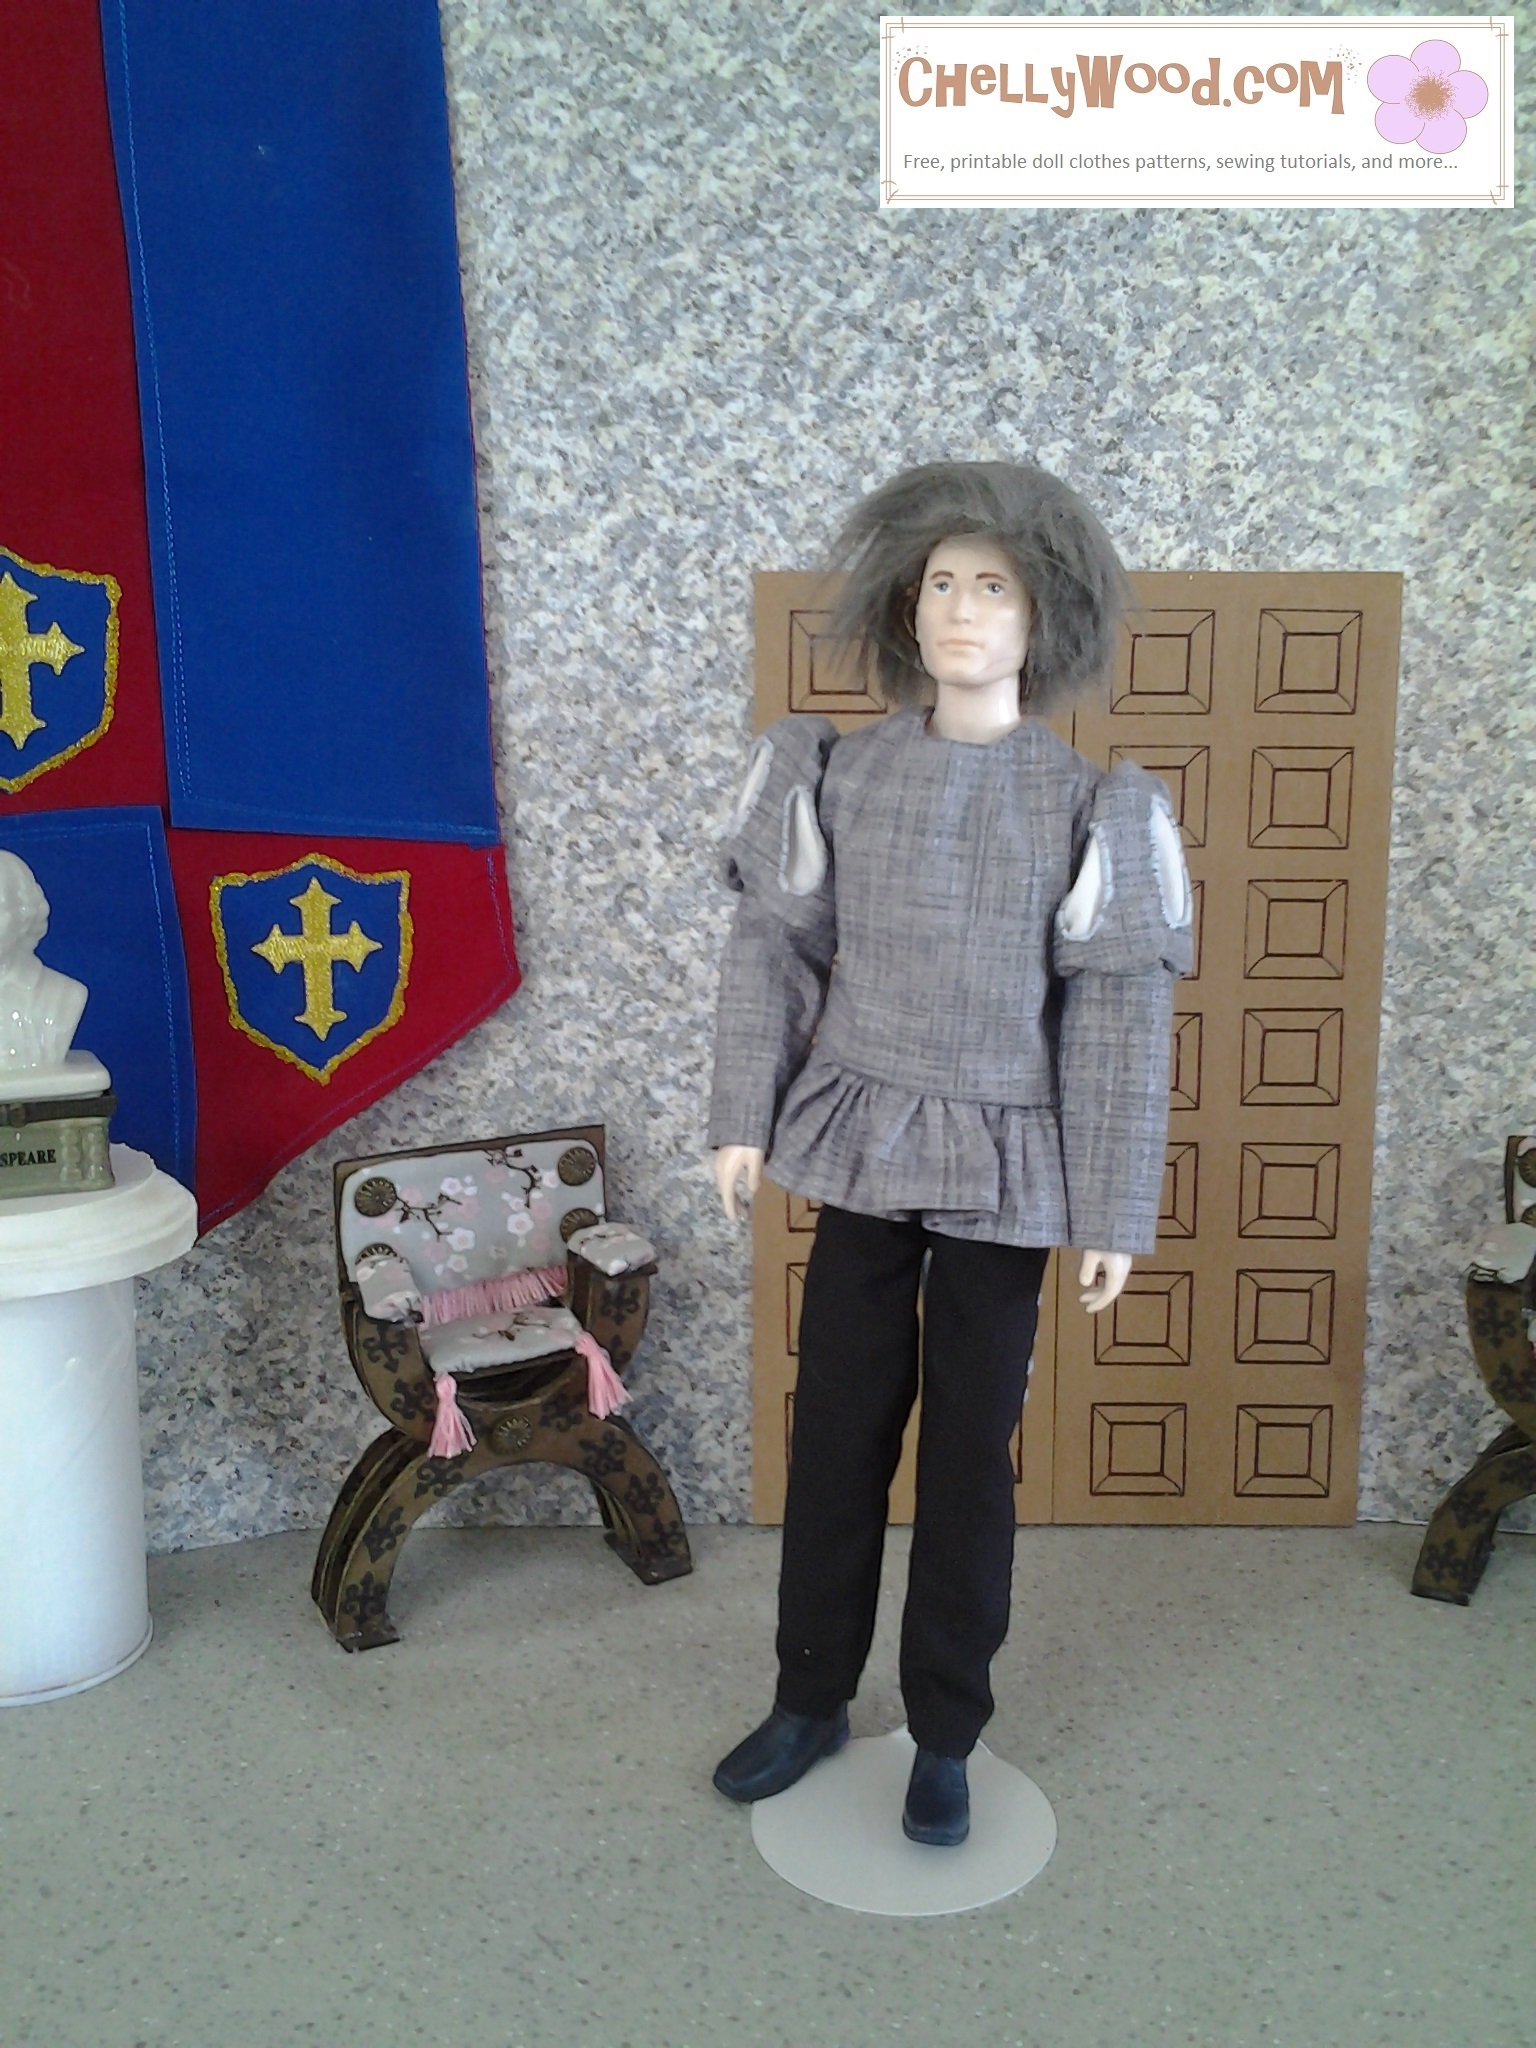 Image shows Jackson Rathbone doll (actor who played Jasper in the Twilight movie) dressed in a medieval or Renaissance style tunic and trousers. Pattern for this costume is free at ChellyWood.com, along with a tutorial showing how to make it.